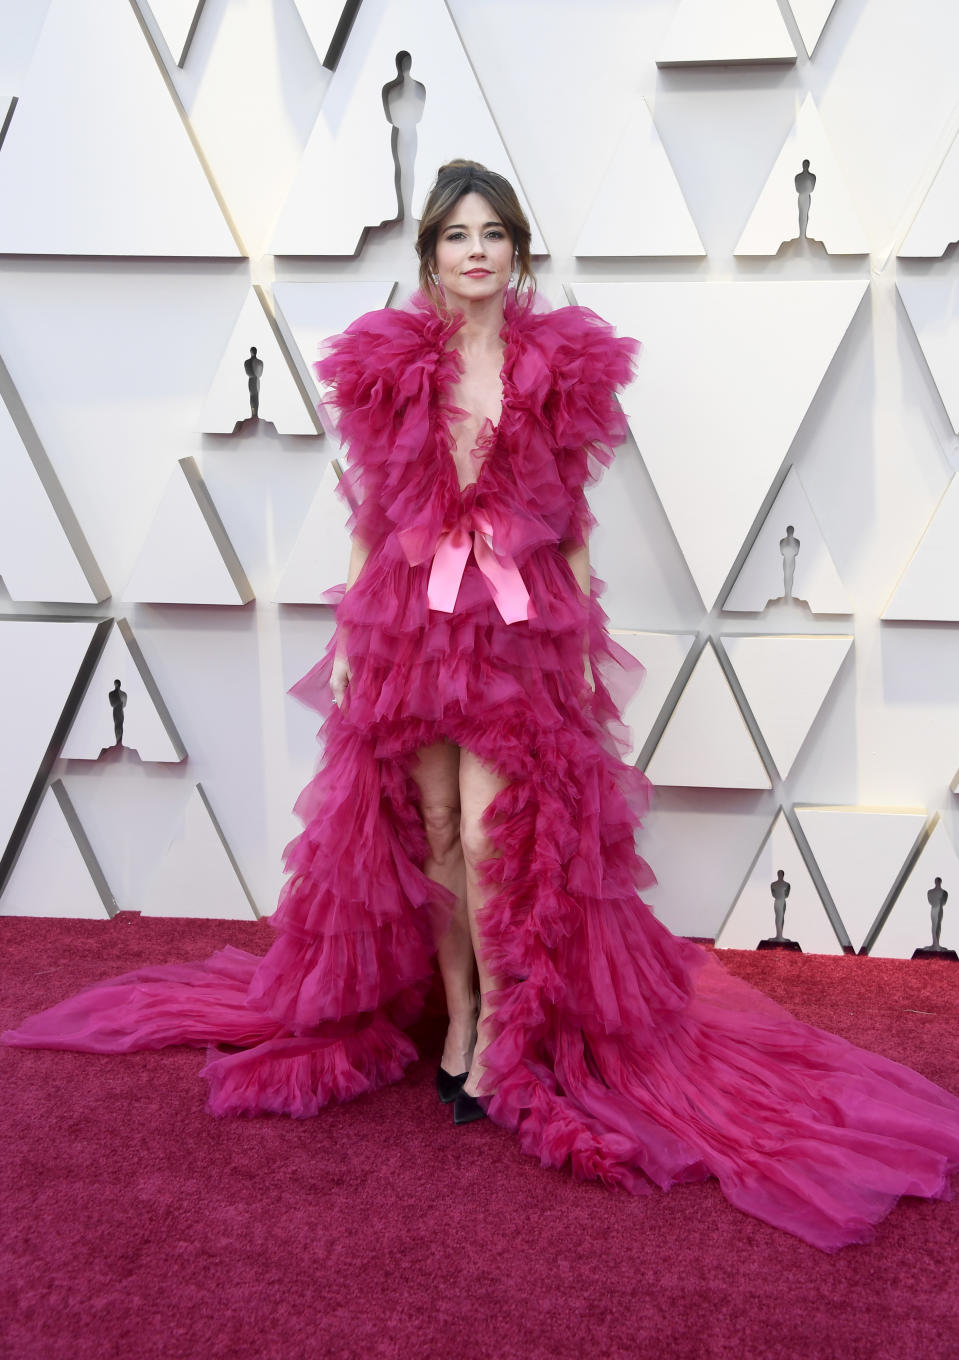 "<p>Cardellini's film ""Green Book"" may have taken home the award for Best Picture in 2019, but the actress's ruffled fuchsia gown was an ill-fitting choice that garnered attention for all the wrong reasons.</p>"